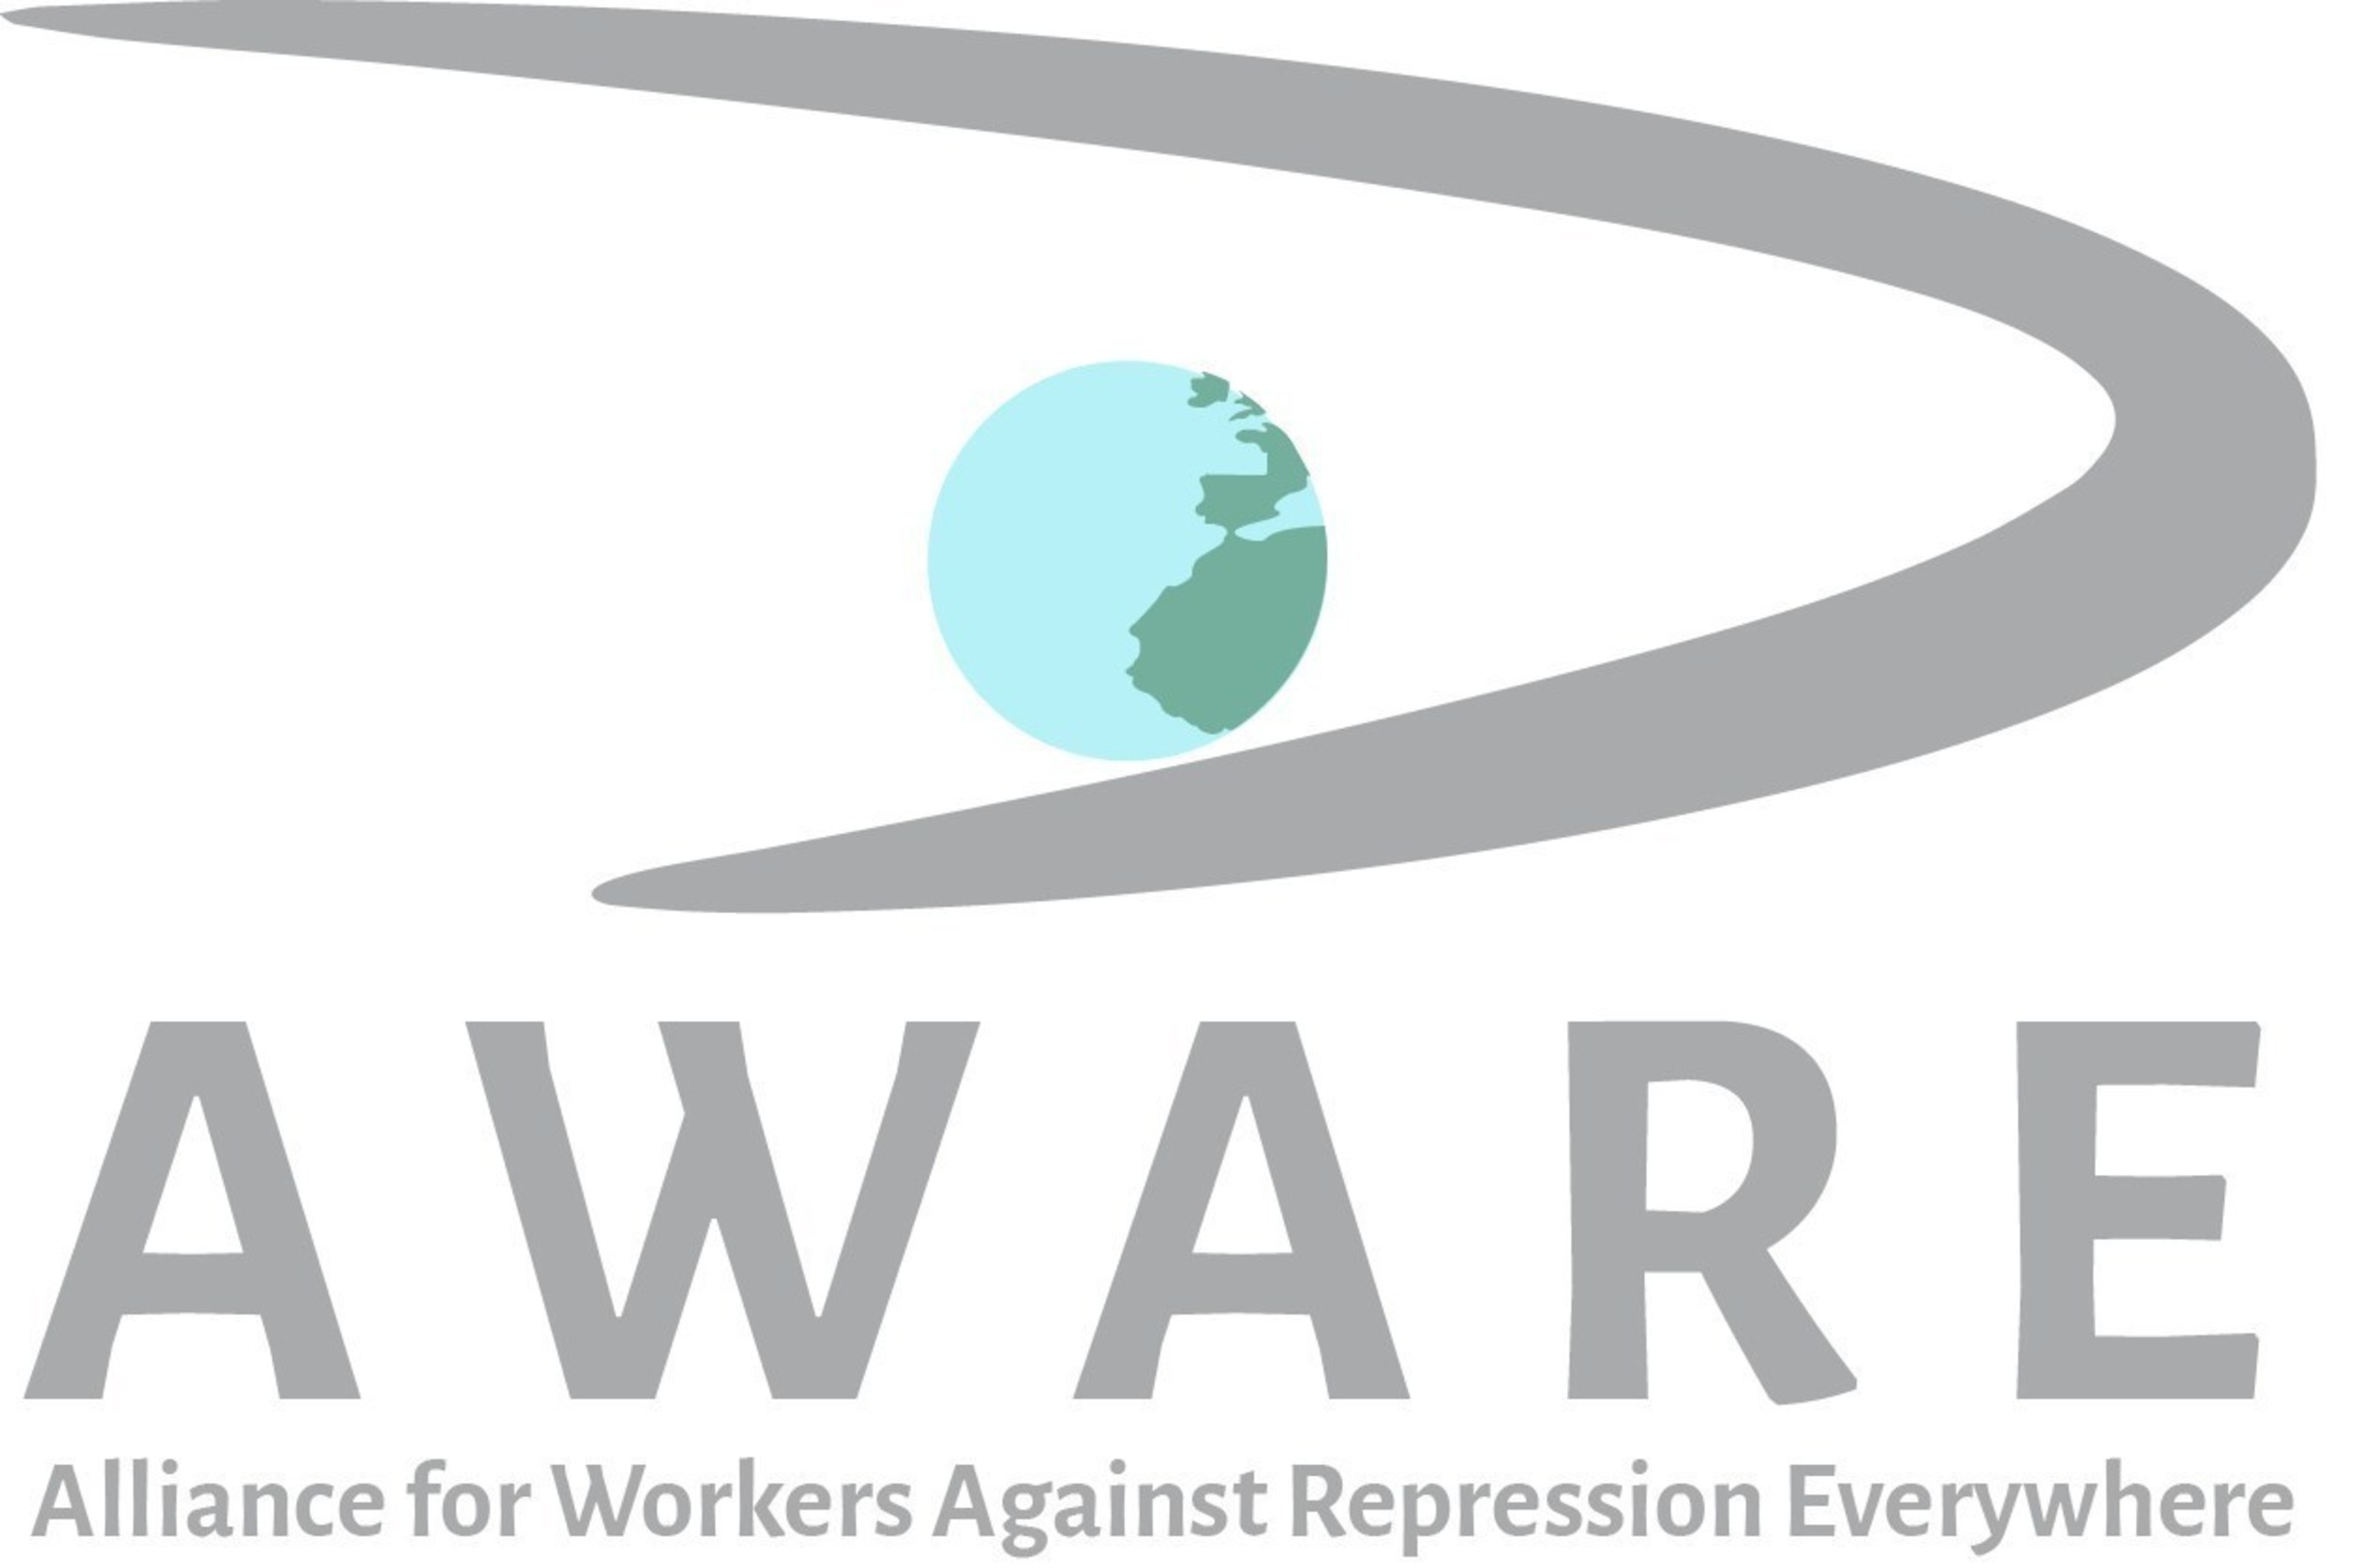 The Alliance for Workers Against Repression Everywhere calls for a boycott of Qatar Airways.